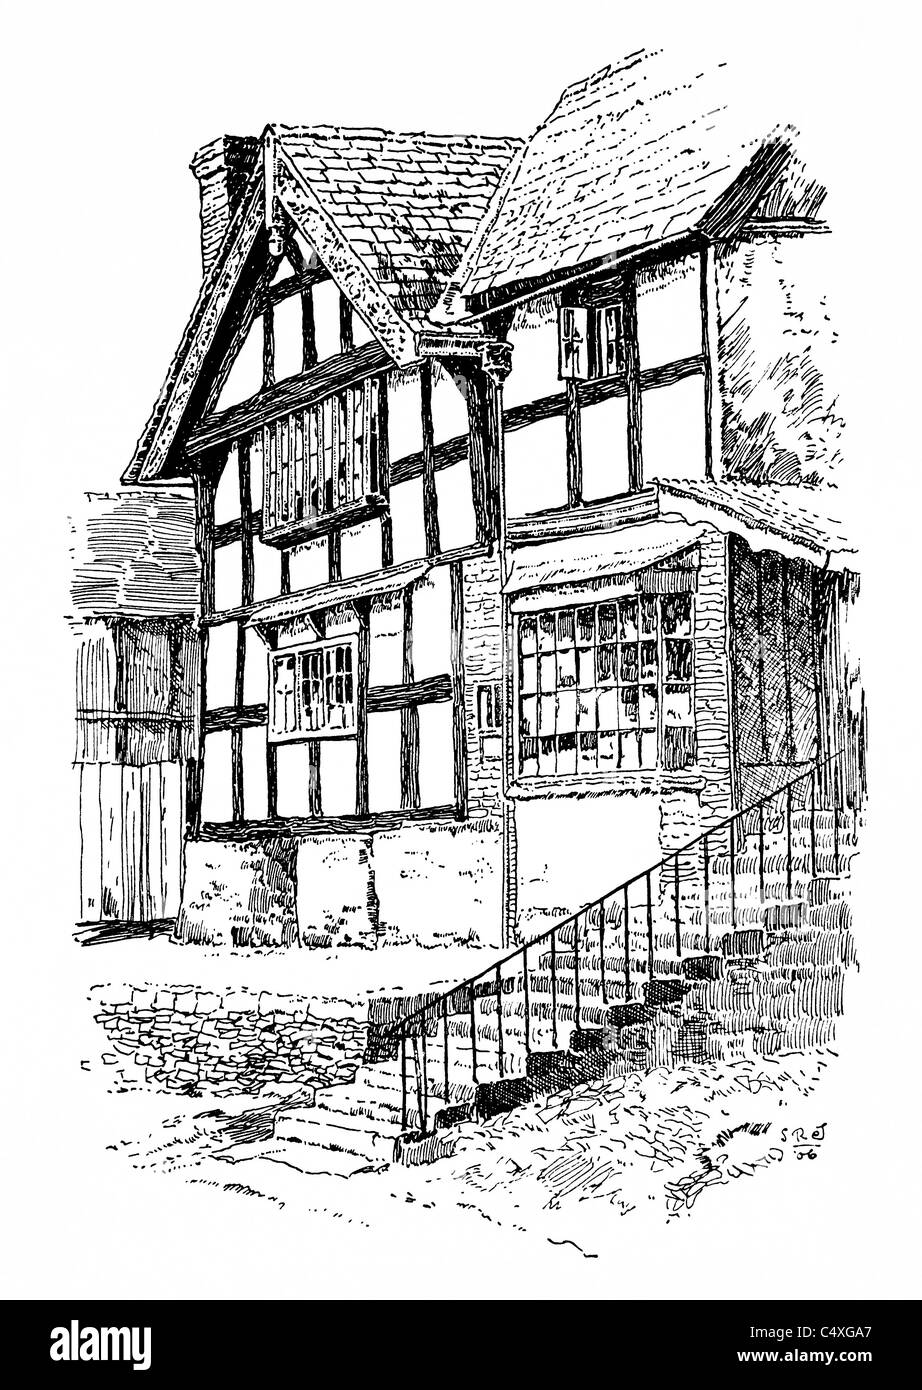 Pembridge, Herefordshire - pen and ink illustration from 'Old English Country Cottages' by Charles Holme, - Stock Image